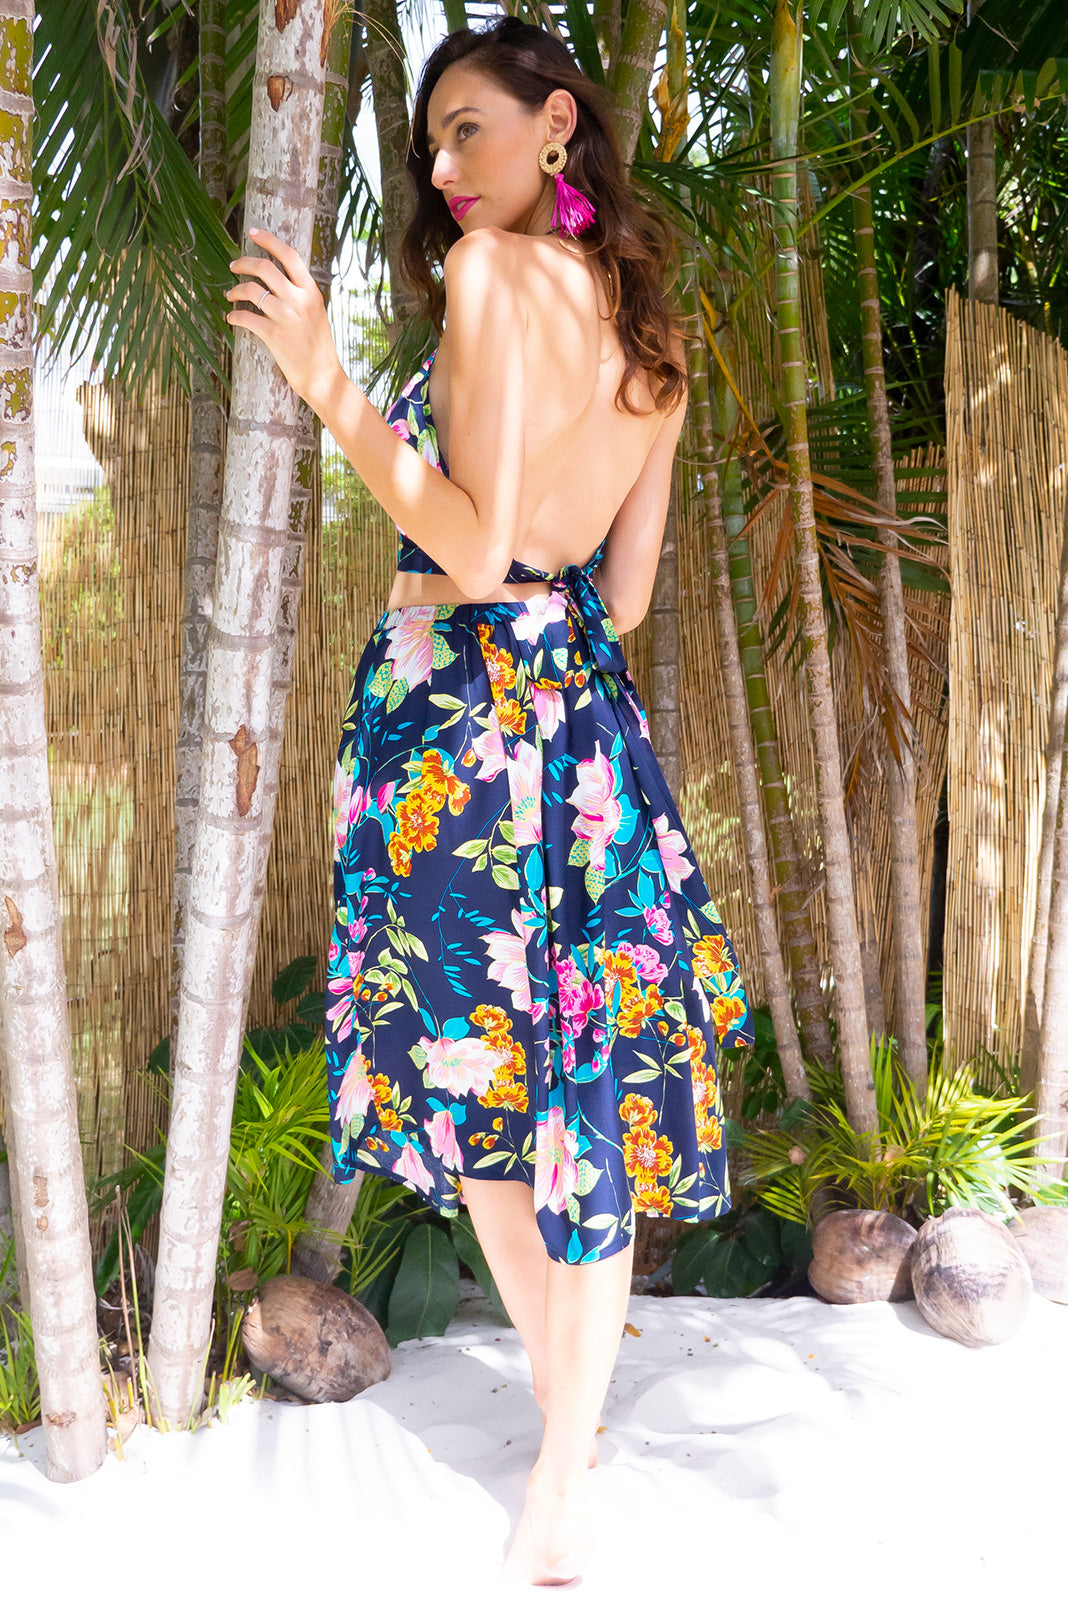 Bahama Navy Water Lilly Top is a halter neck backless summer top featuring a bright tropical inspired floral print on a dark navy based woven 100% rayon